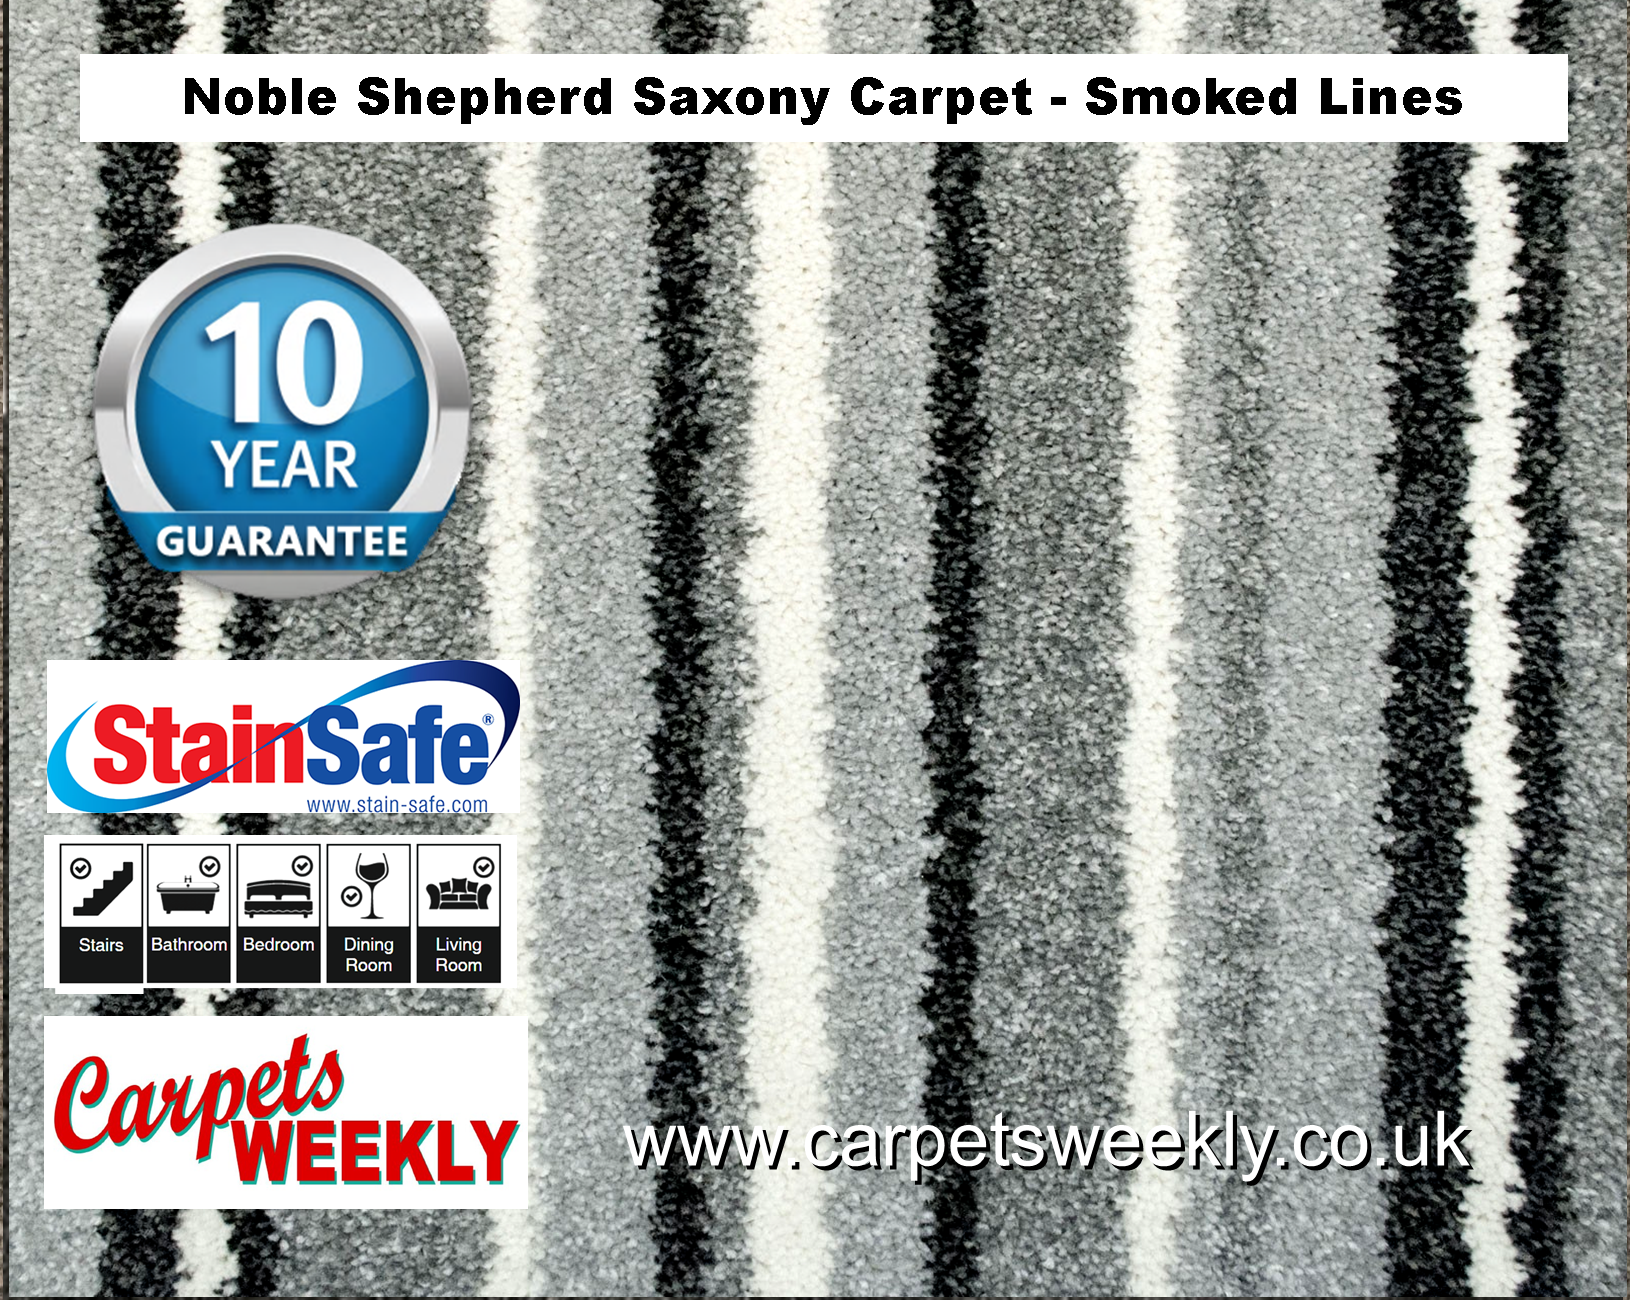 Noble Shepherd Saxony Carpet from Carpets Weekly Smoked Lines